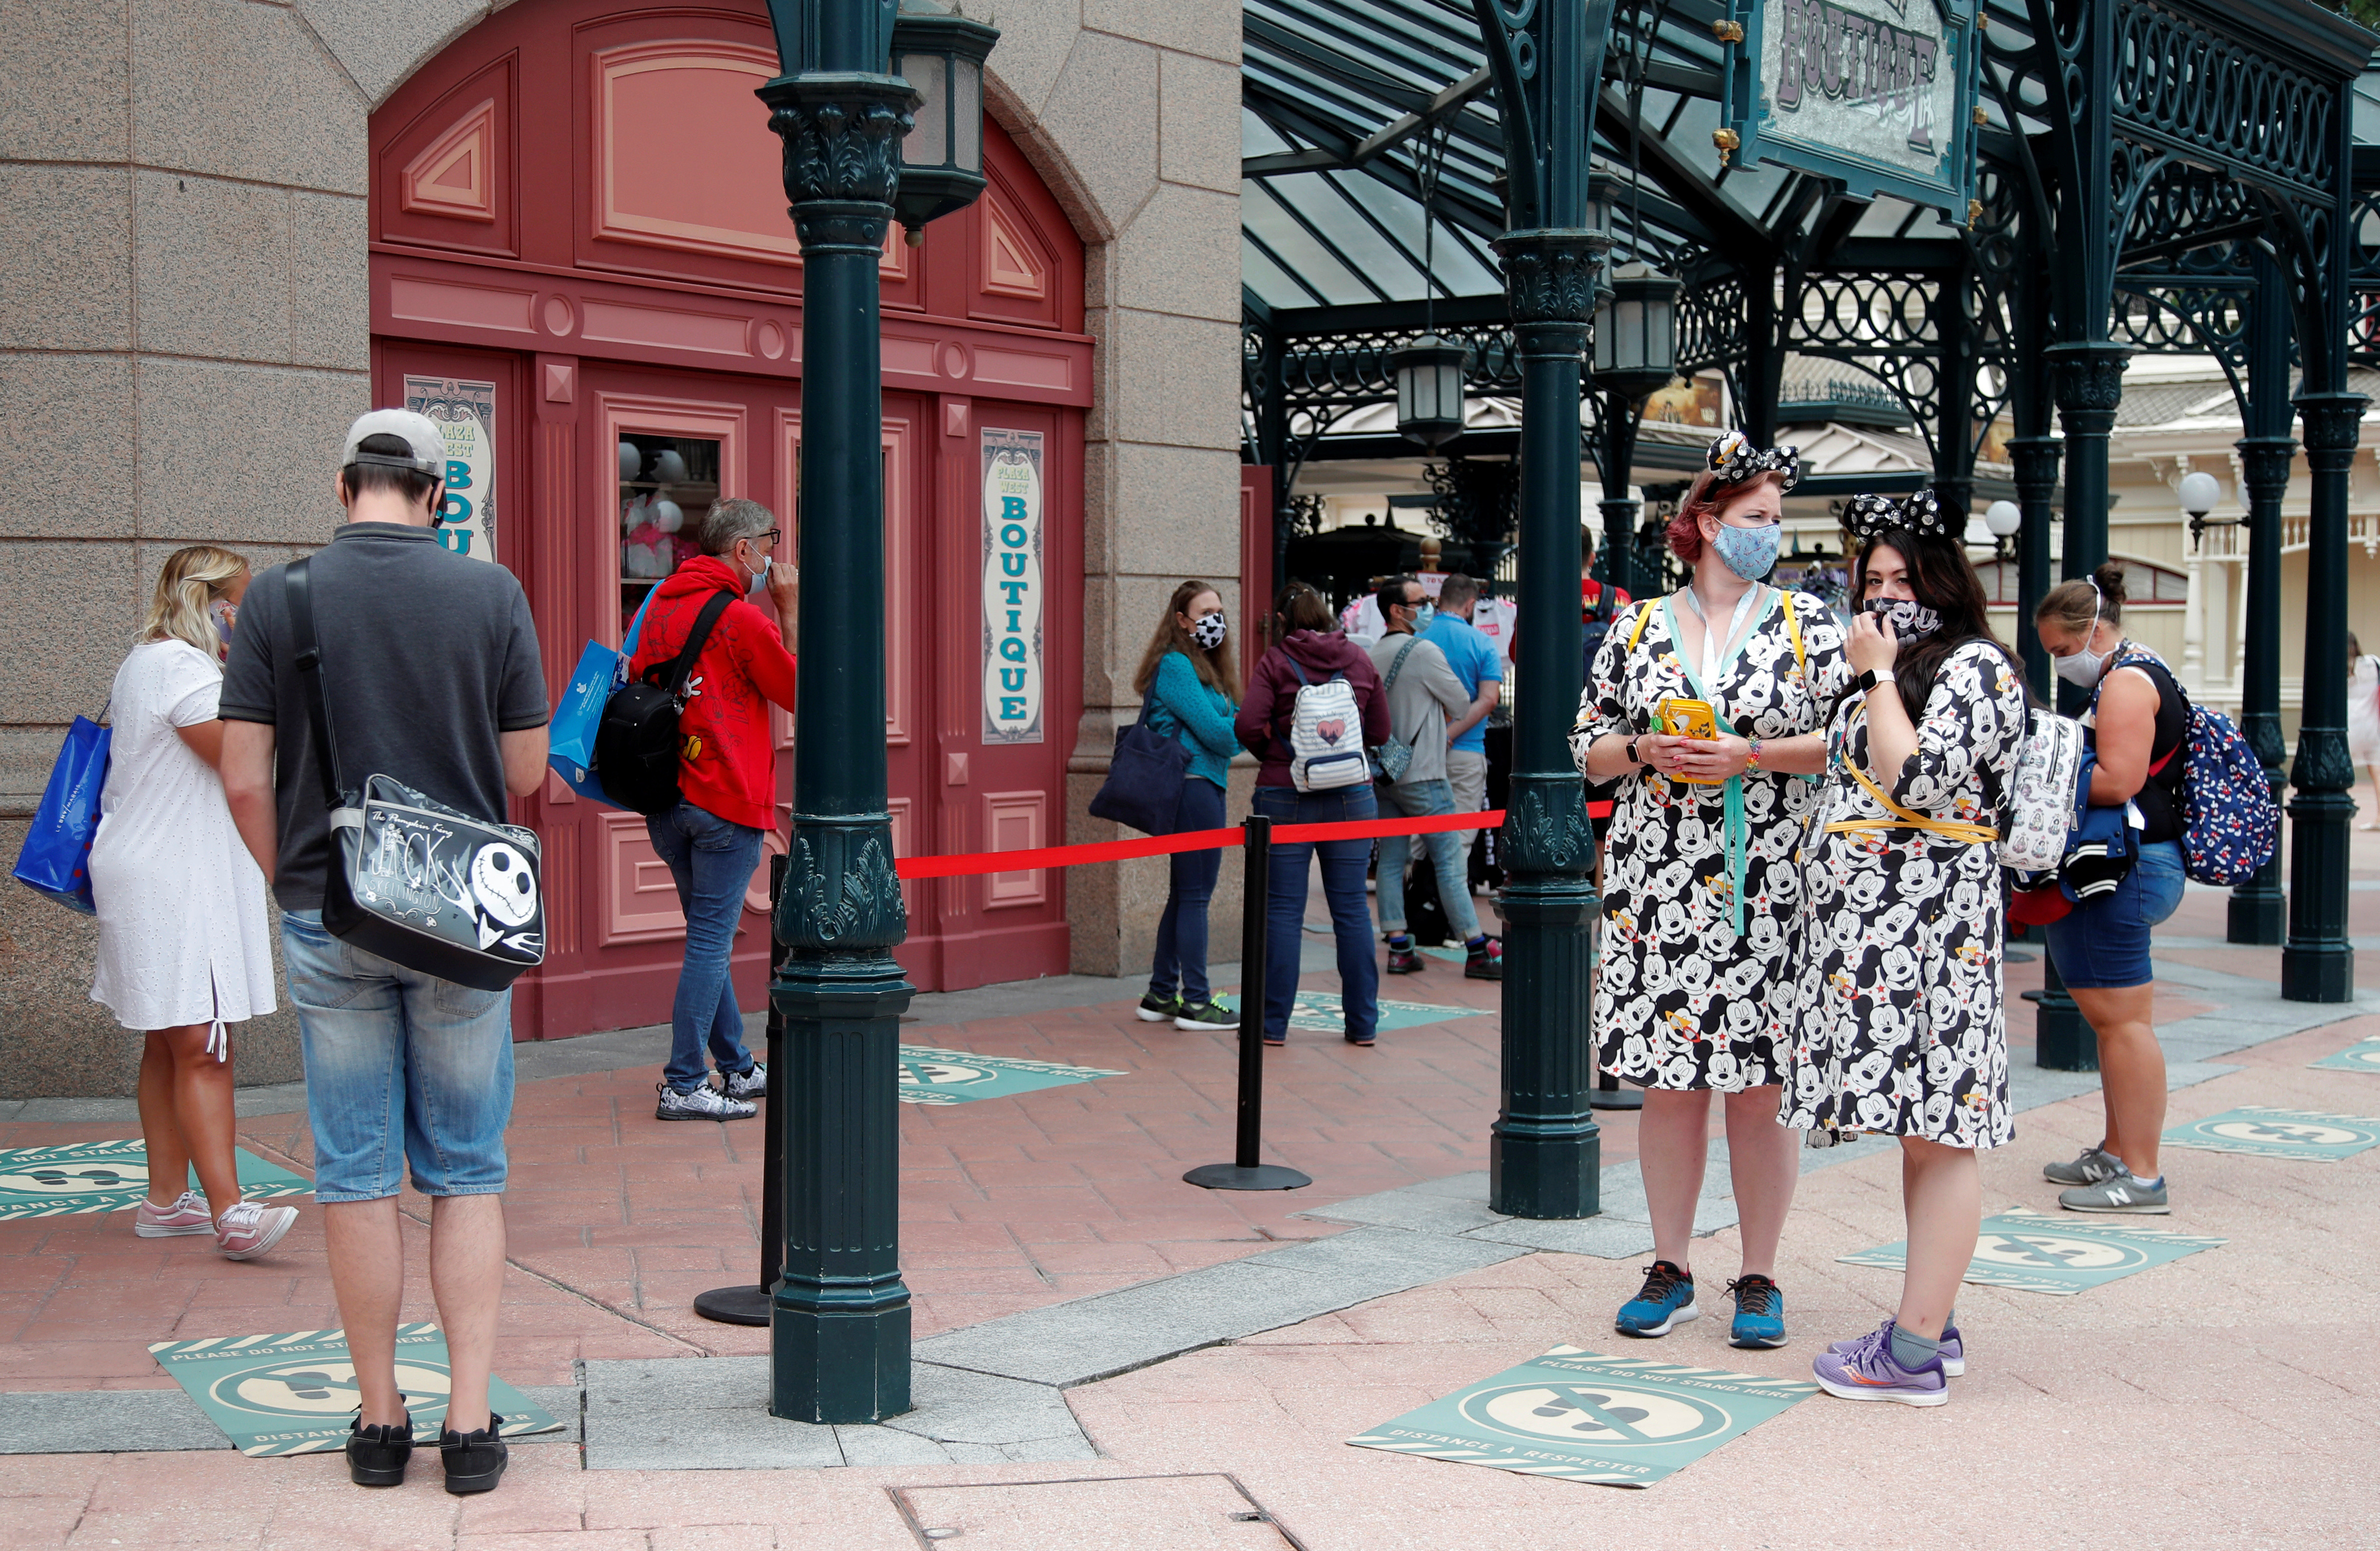 Visitors maintain social distance as they line-up at a souvenirs shop at Disneyland Paris as the theme park reopens its doors to the public in Marne-la-Vallee, near Paris, following the coronavirus disease (COVID-19) outbreak in France, July 15, 2020.   REUTERS/Charles Platiau - RC2NTH9LSY2K